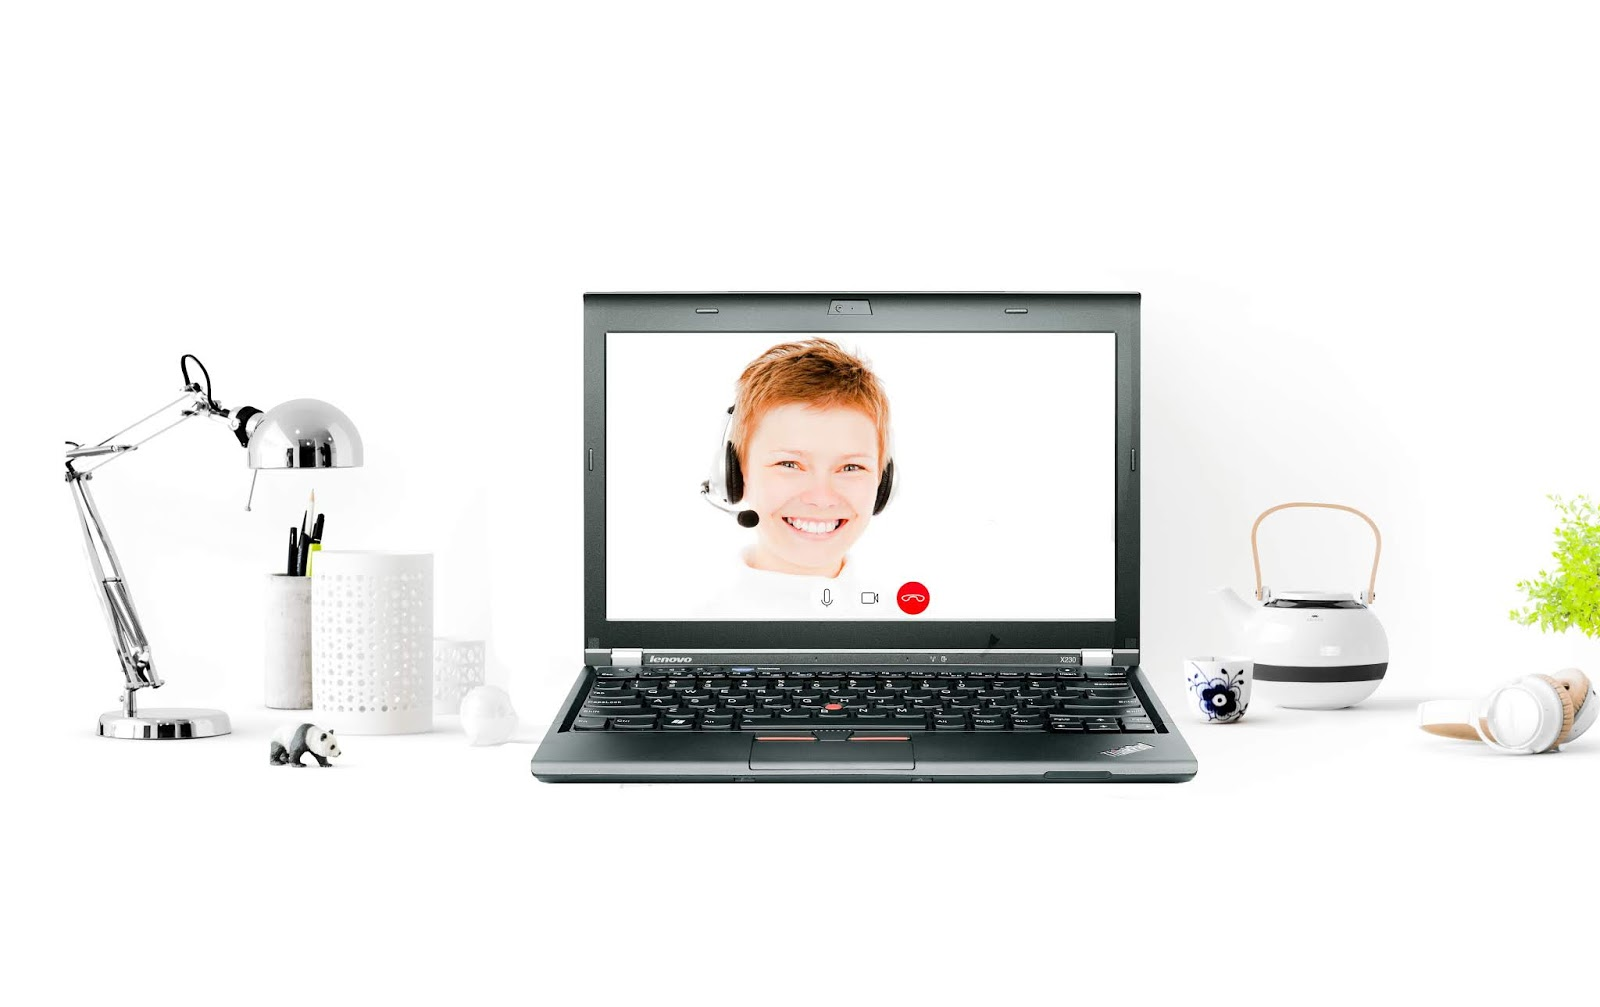 image of woman using video conference